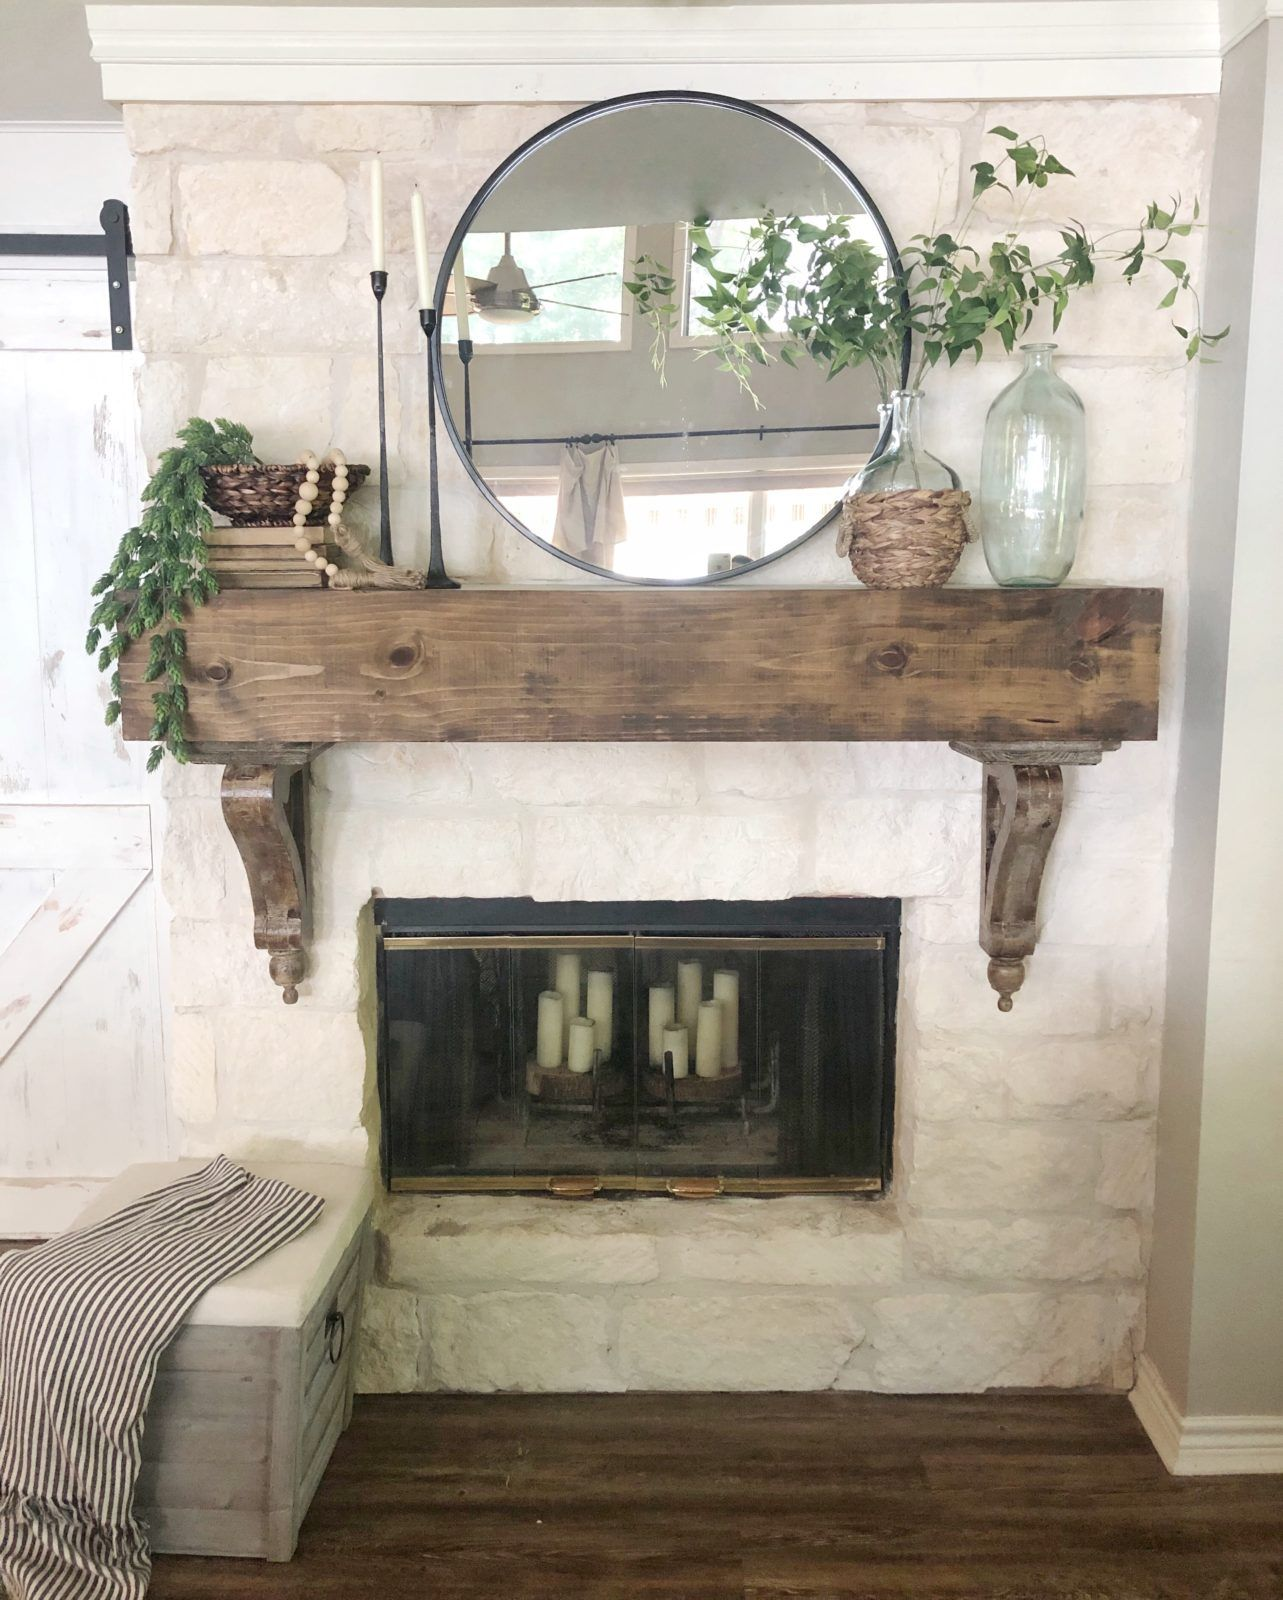 Home Decor Trends For 2020 Hip Humble Style In 2020 Trending Decor Fireplace Mantle Decor Home Decor Trends